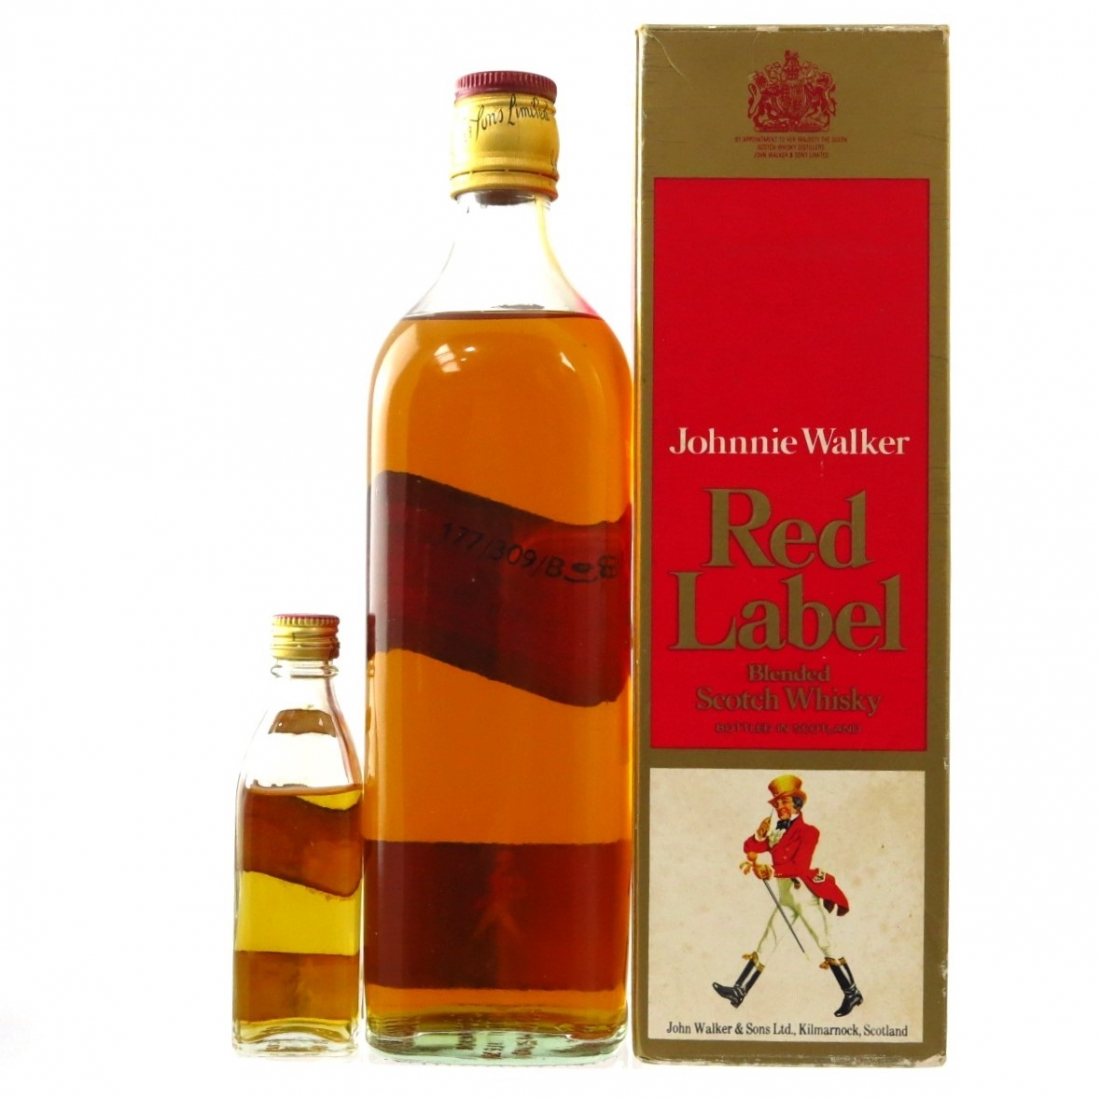 Johnnie Walker Red Label 1970s / with Miniature